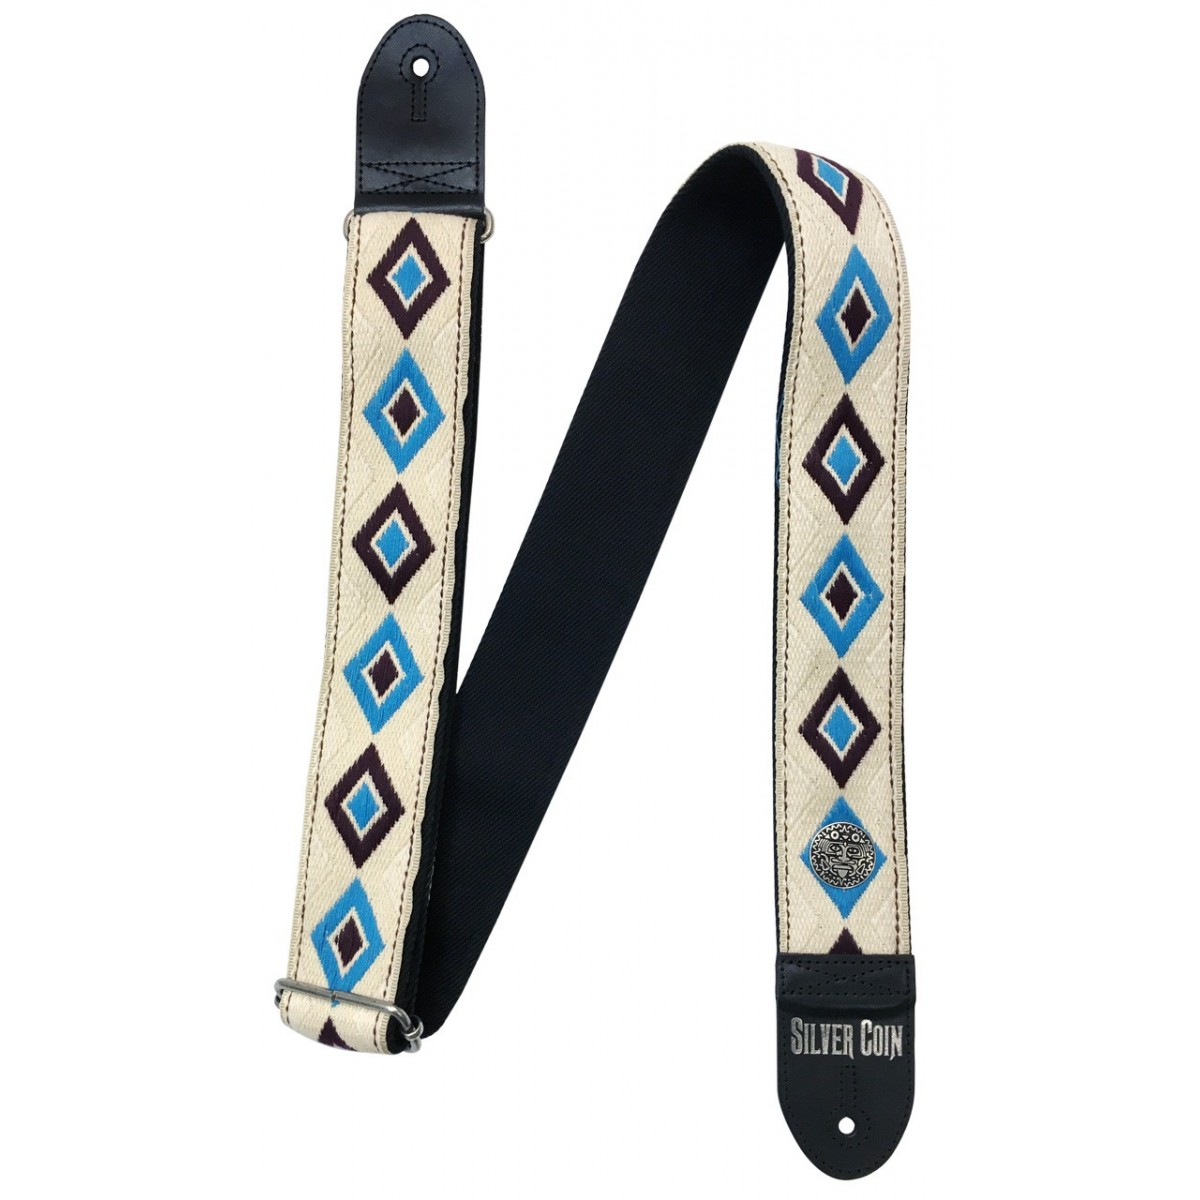 Tonepros Abr-i Replacement Aged